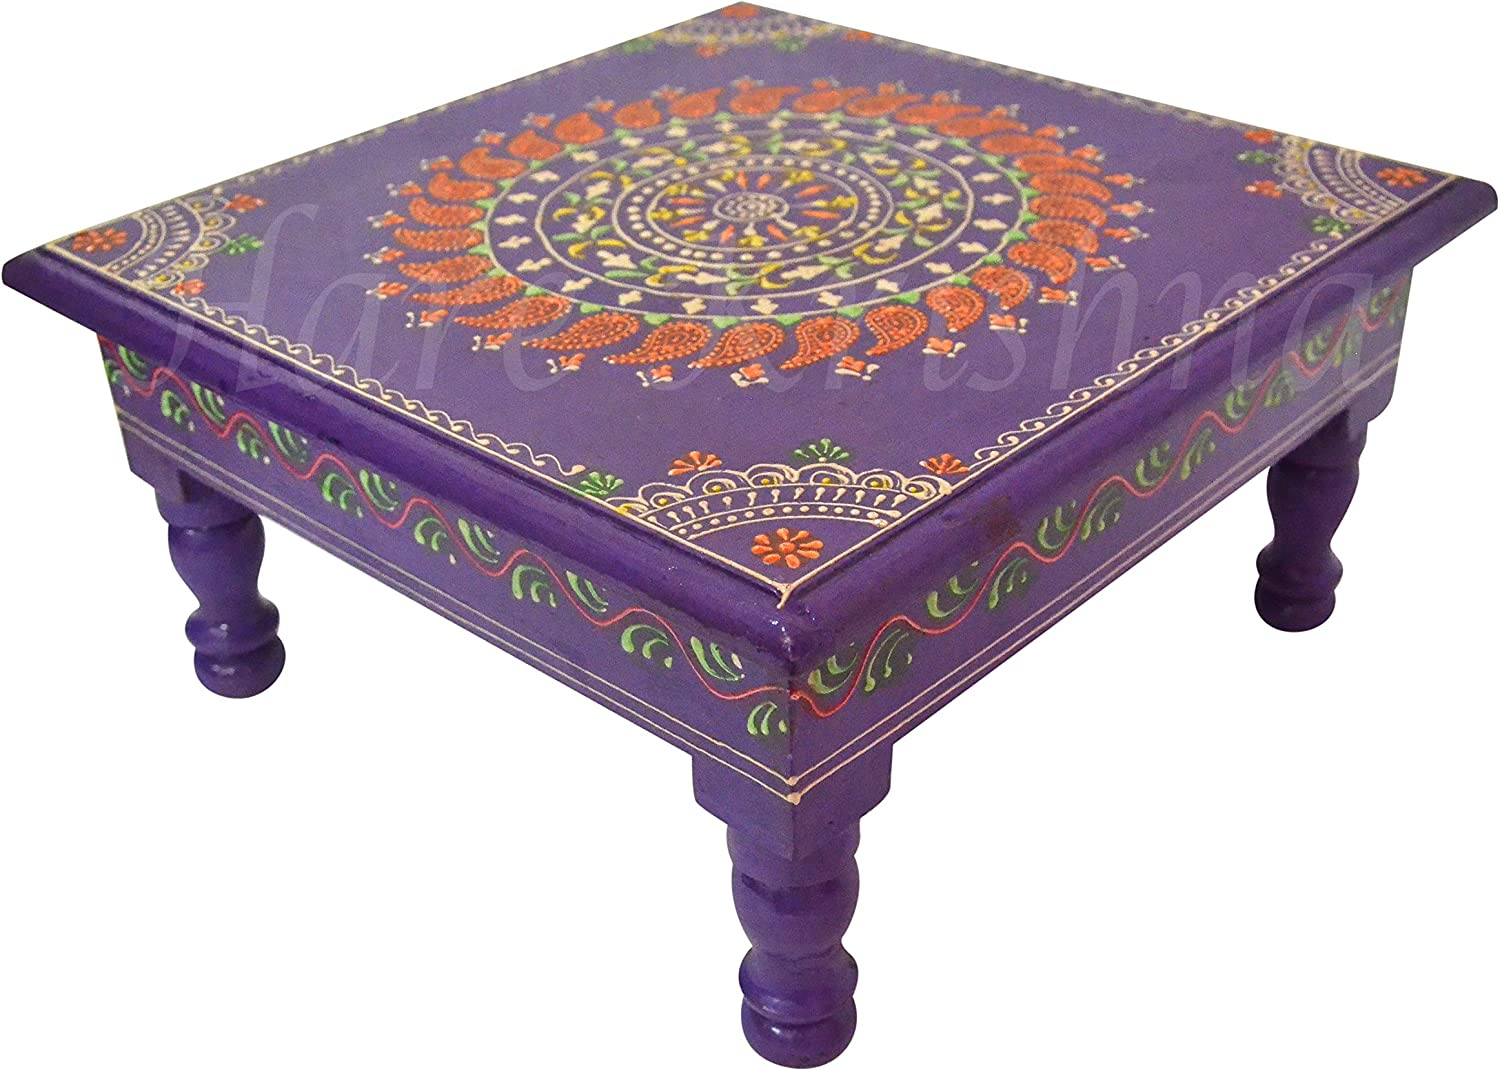 Living Room Decor Corner Low Table Multi Design Wooden Side End Table Bajot (Purple) 11 x 11 x 5.5 Inches